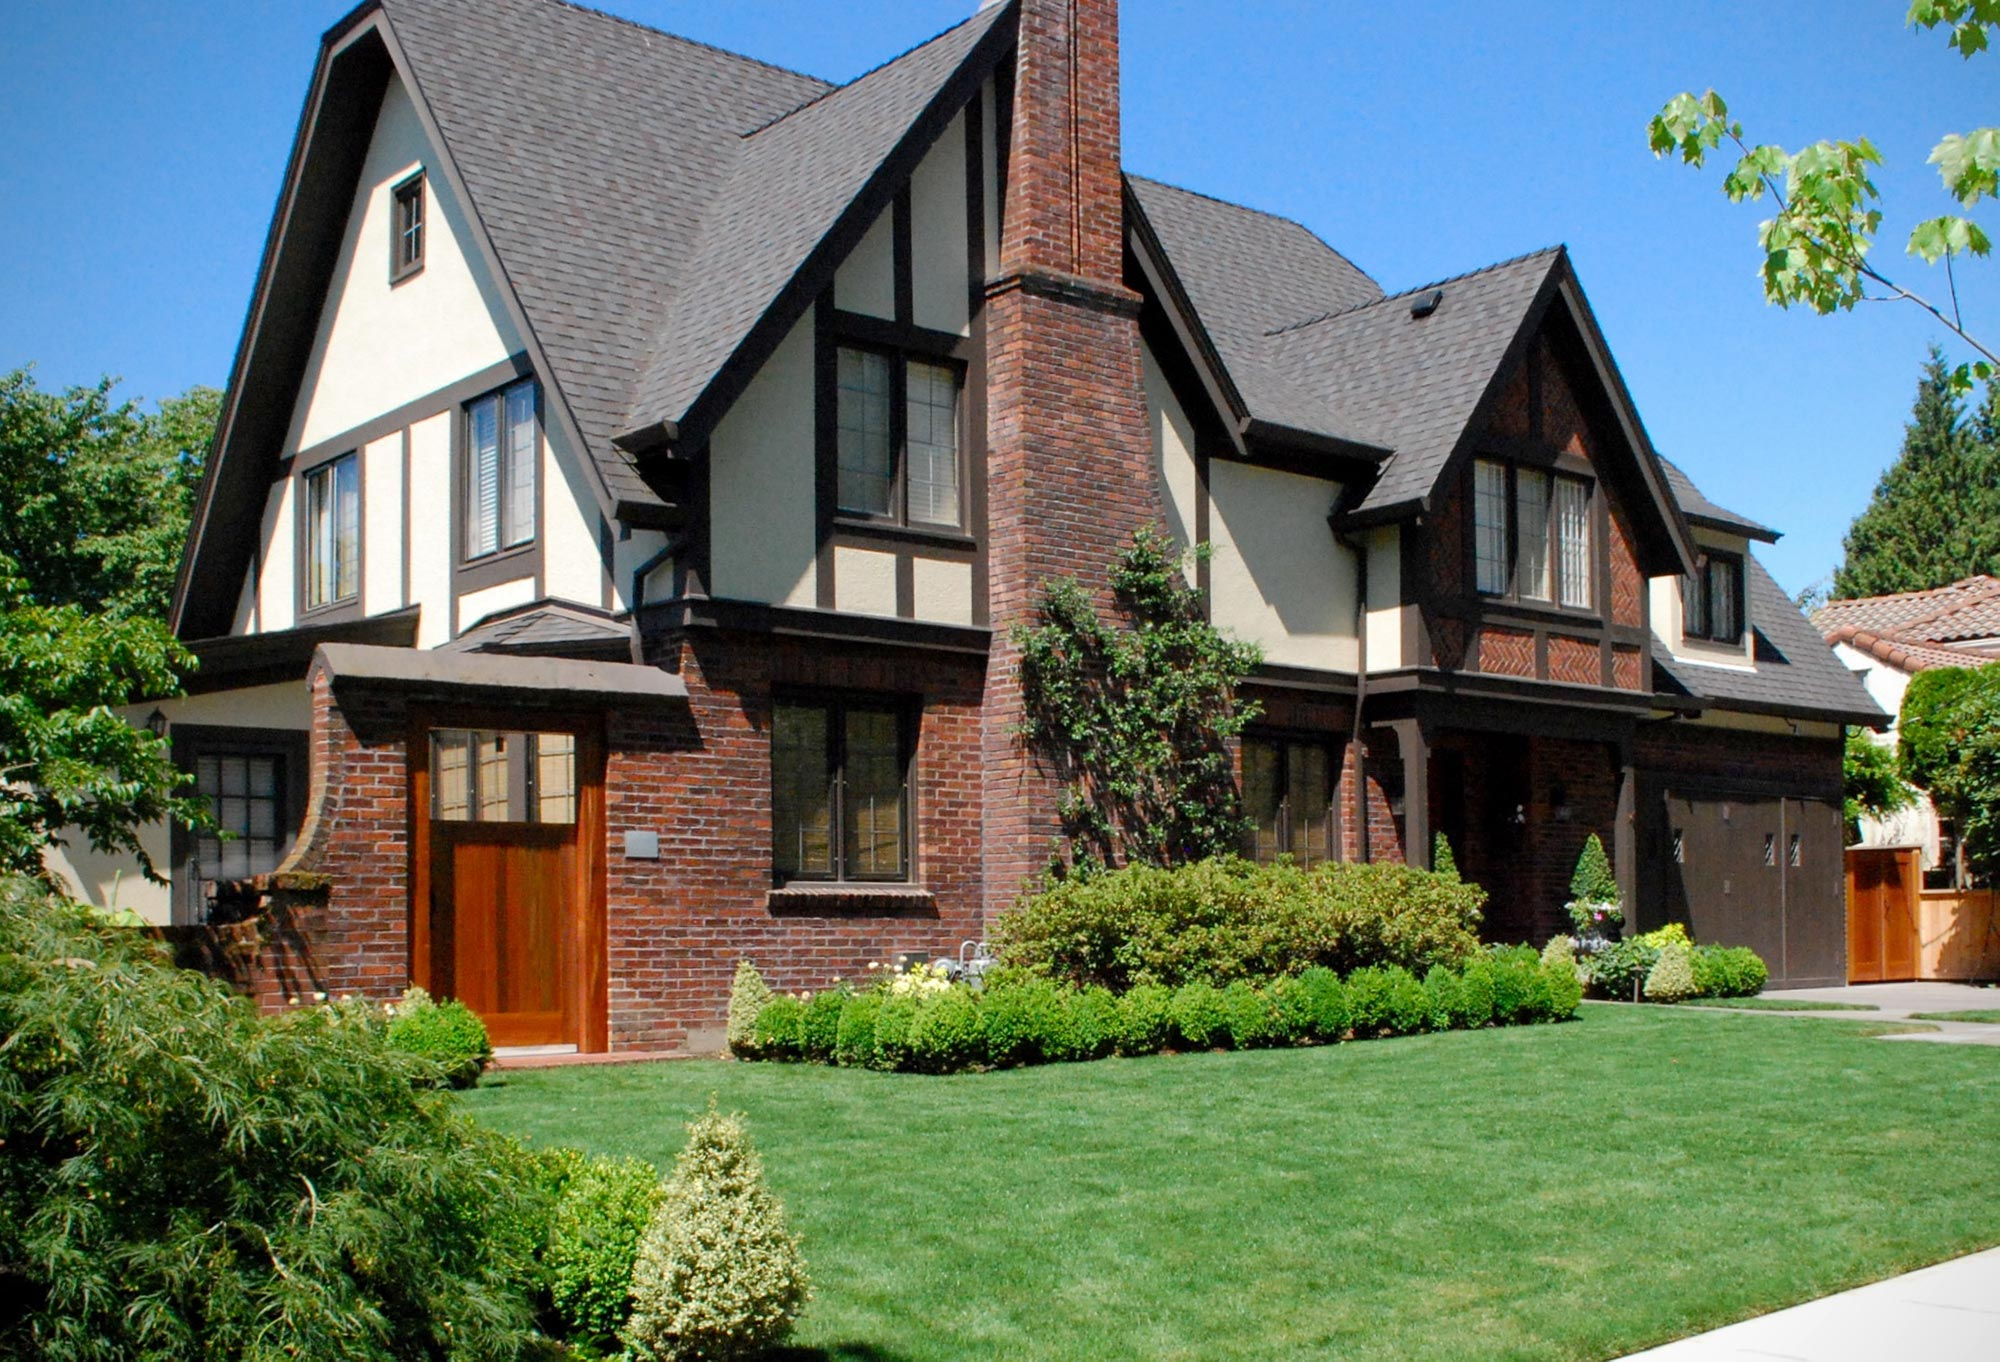 An Eastmoreland home, within walking distance of Sellwood-Moreland.